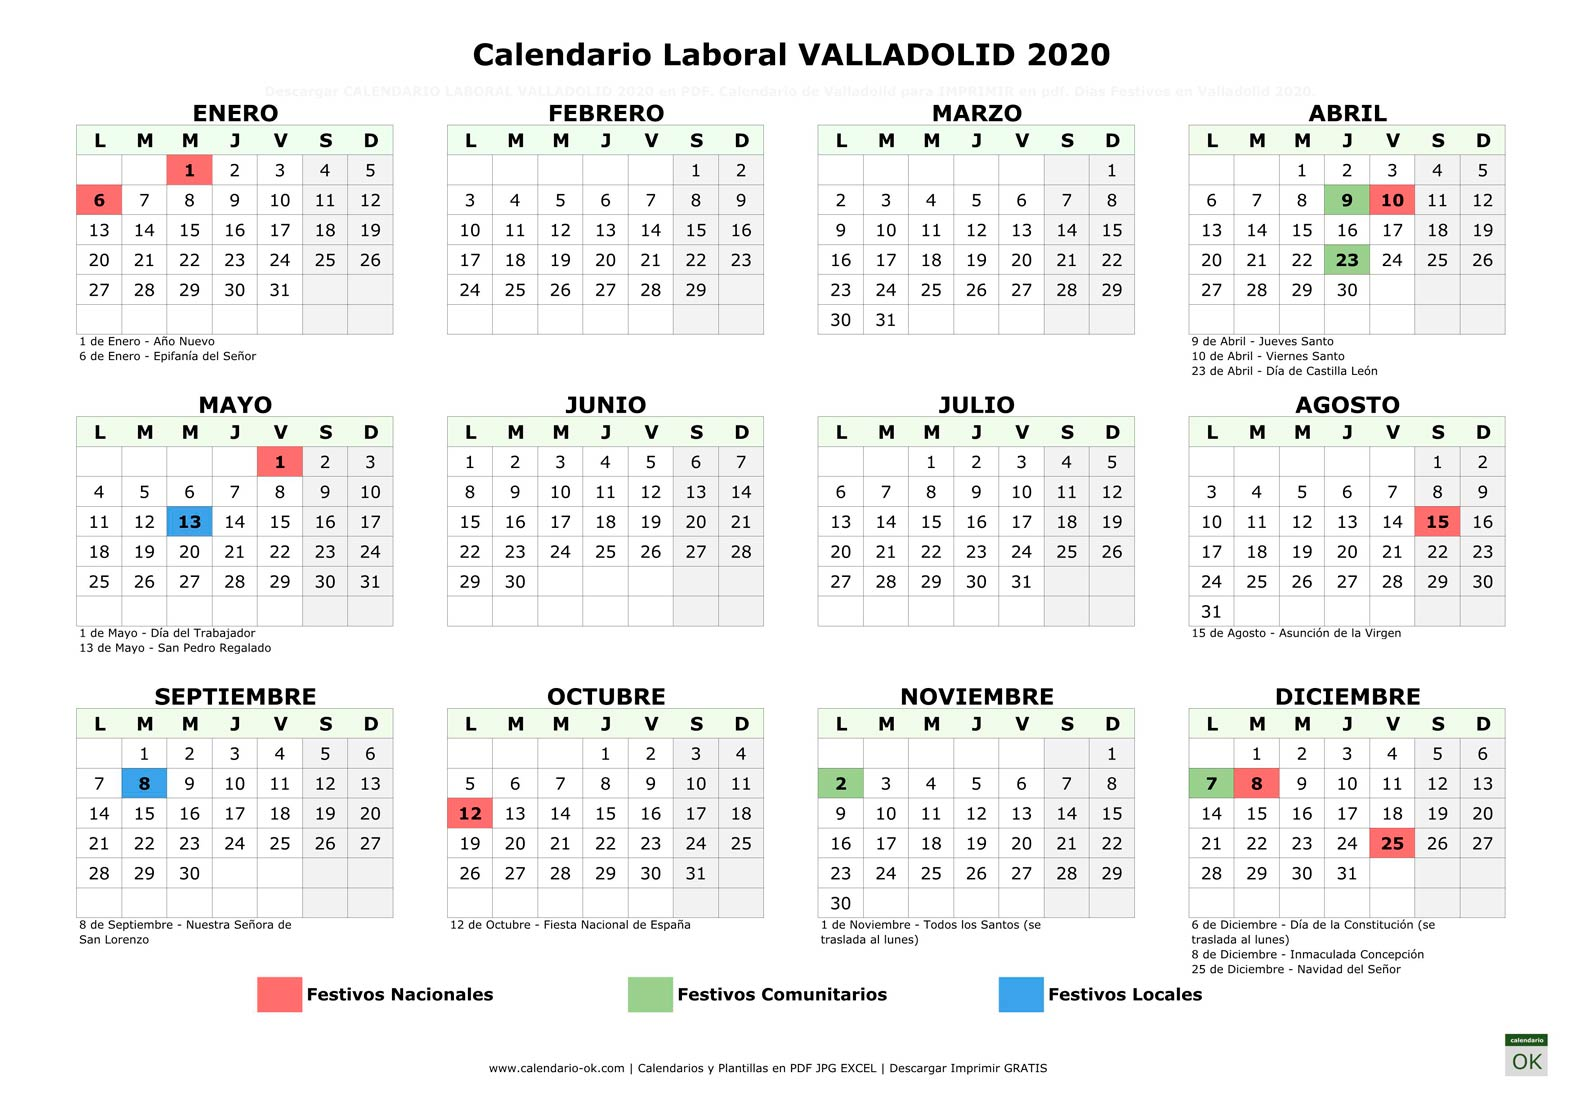 Calendario Laboral VALLADOLID 2020 horizontal